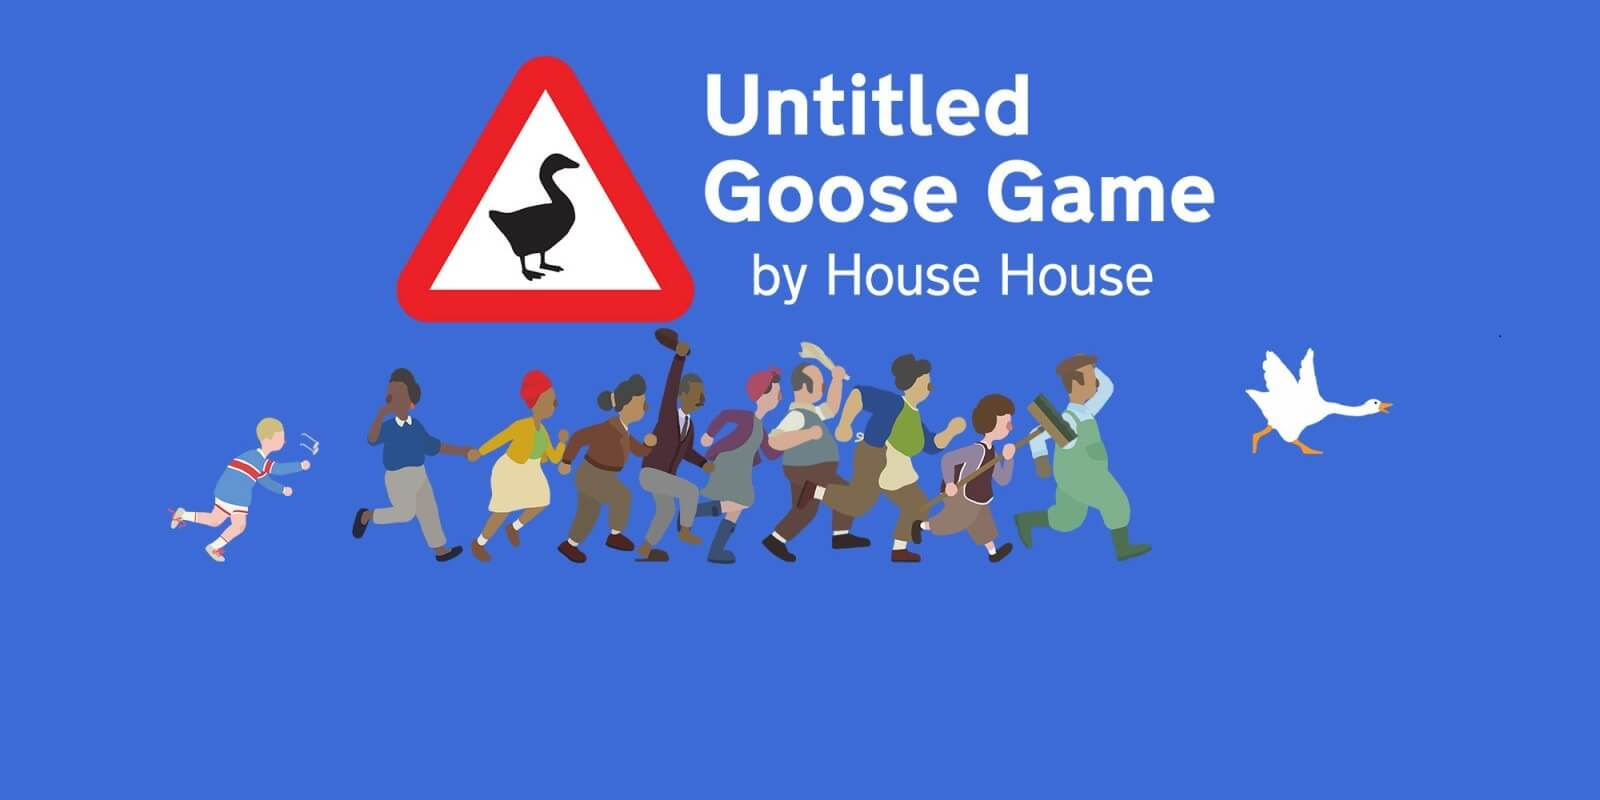 Analisis de Untitled Goose Game